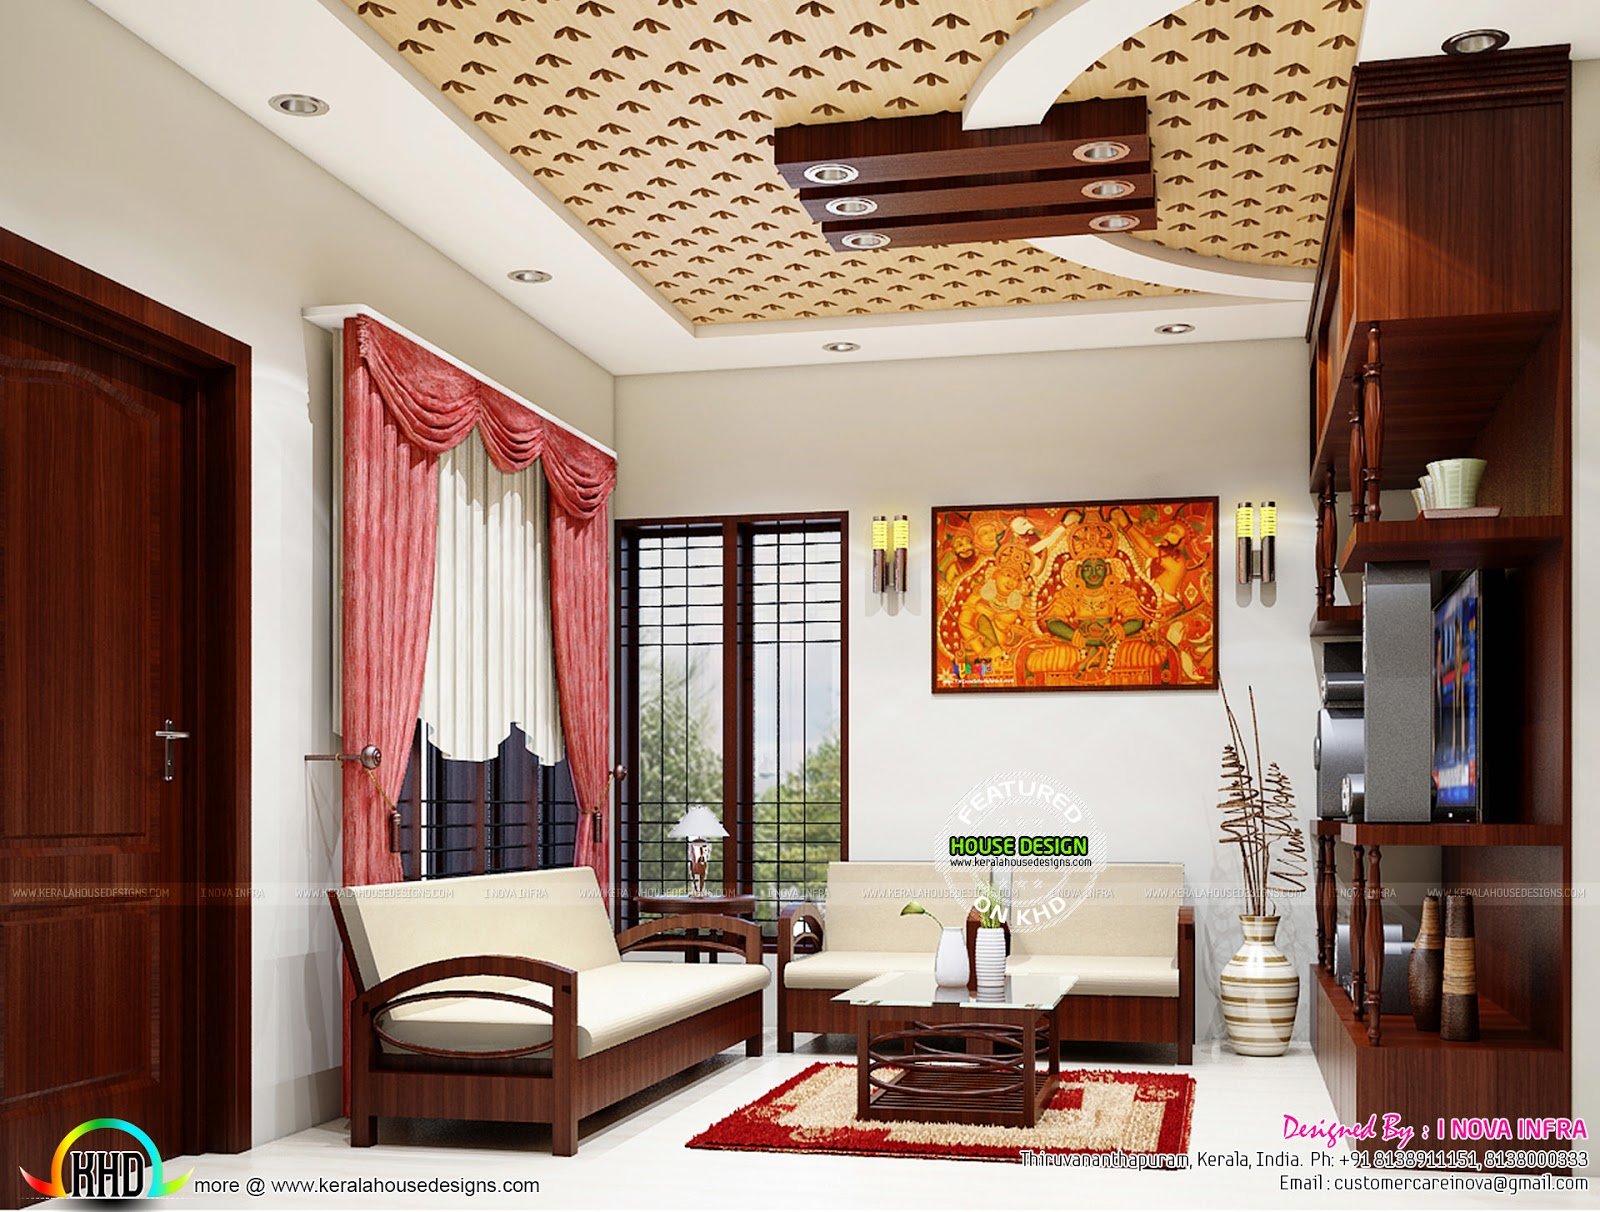 Kerala traditional interiors kerala home design and for Interior designs for flats